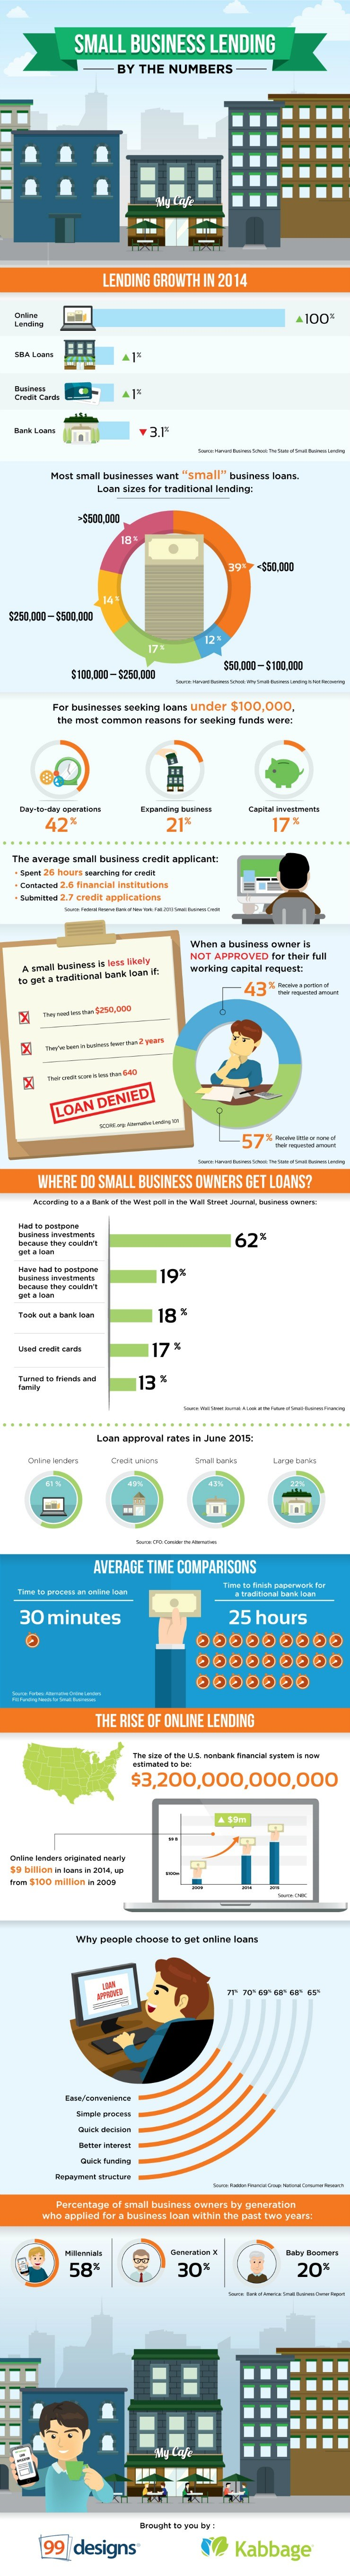 small business lending infographic – New Startup Loans Call: 888-531-1571